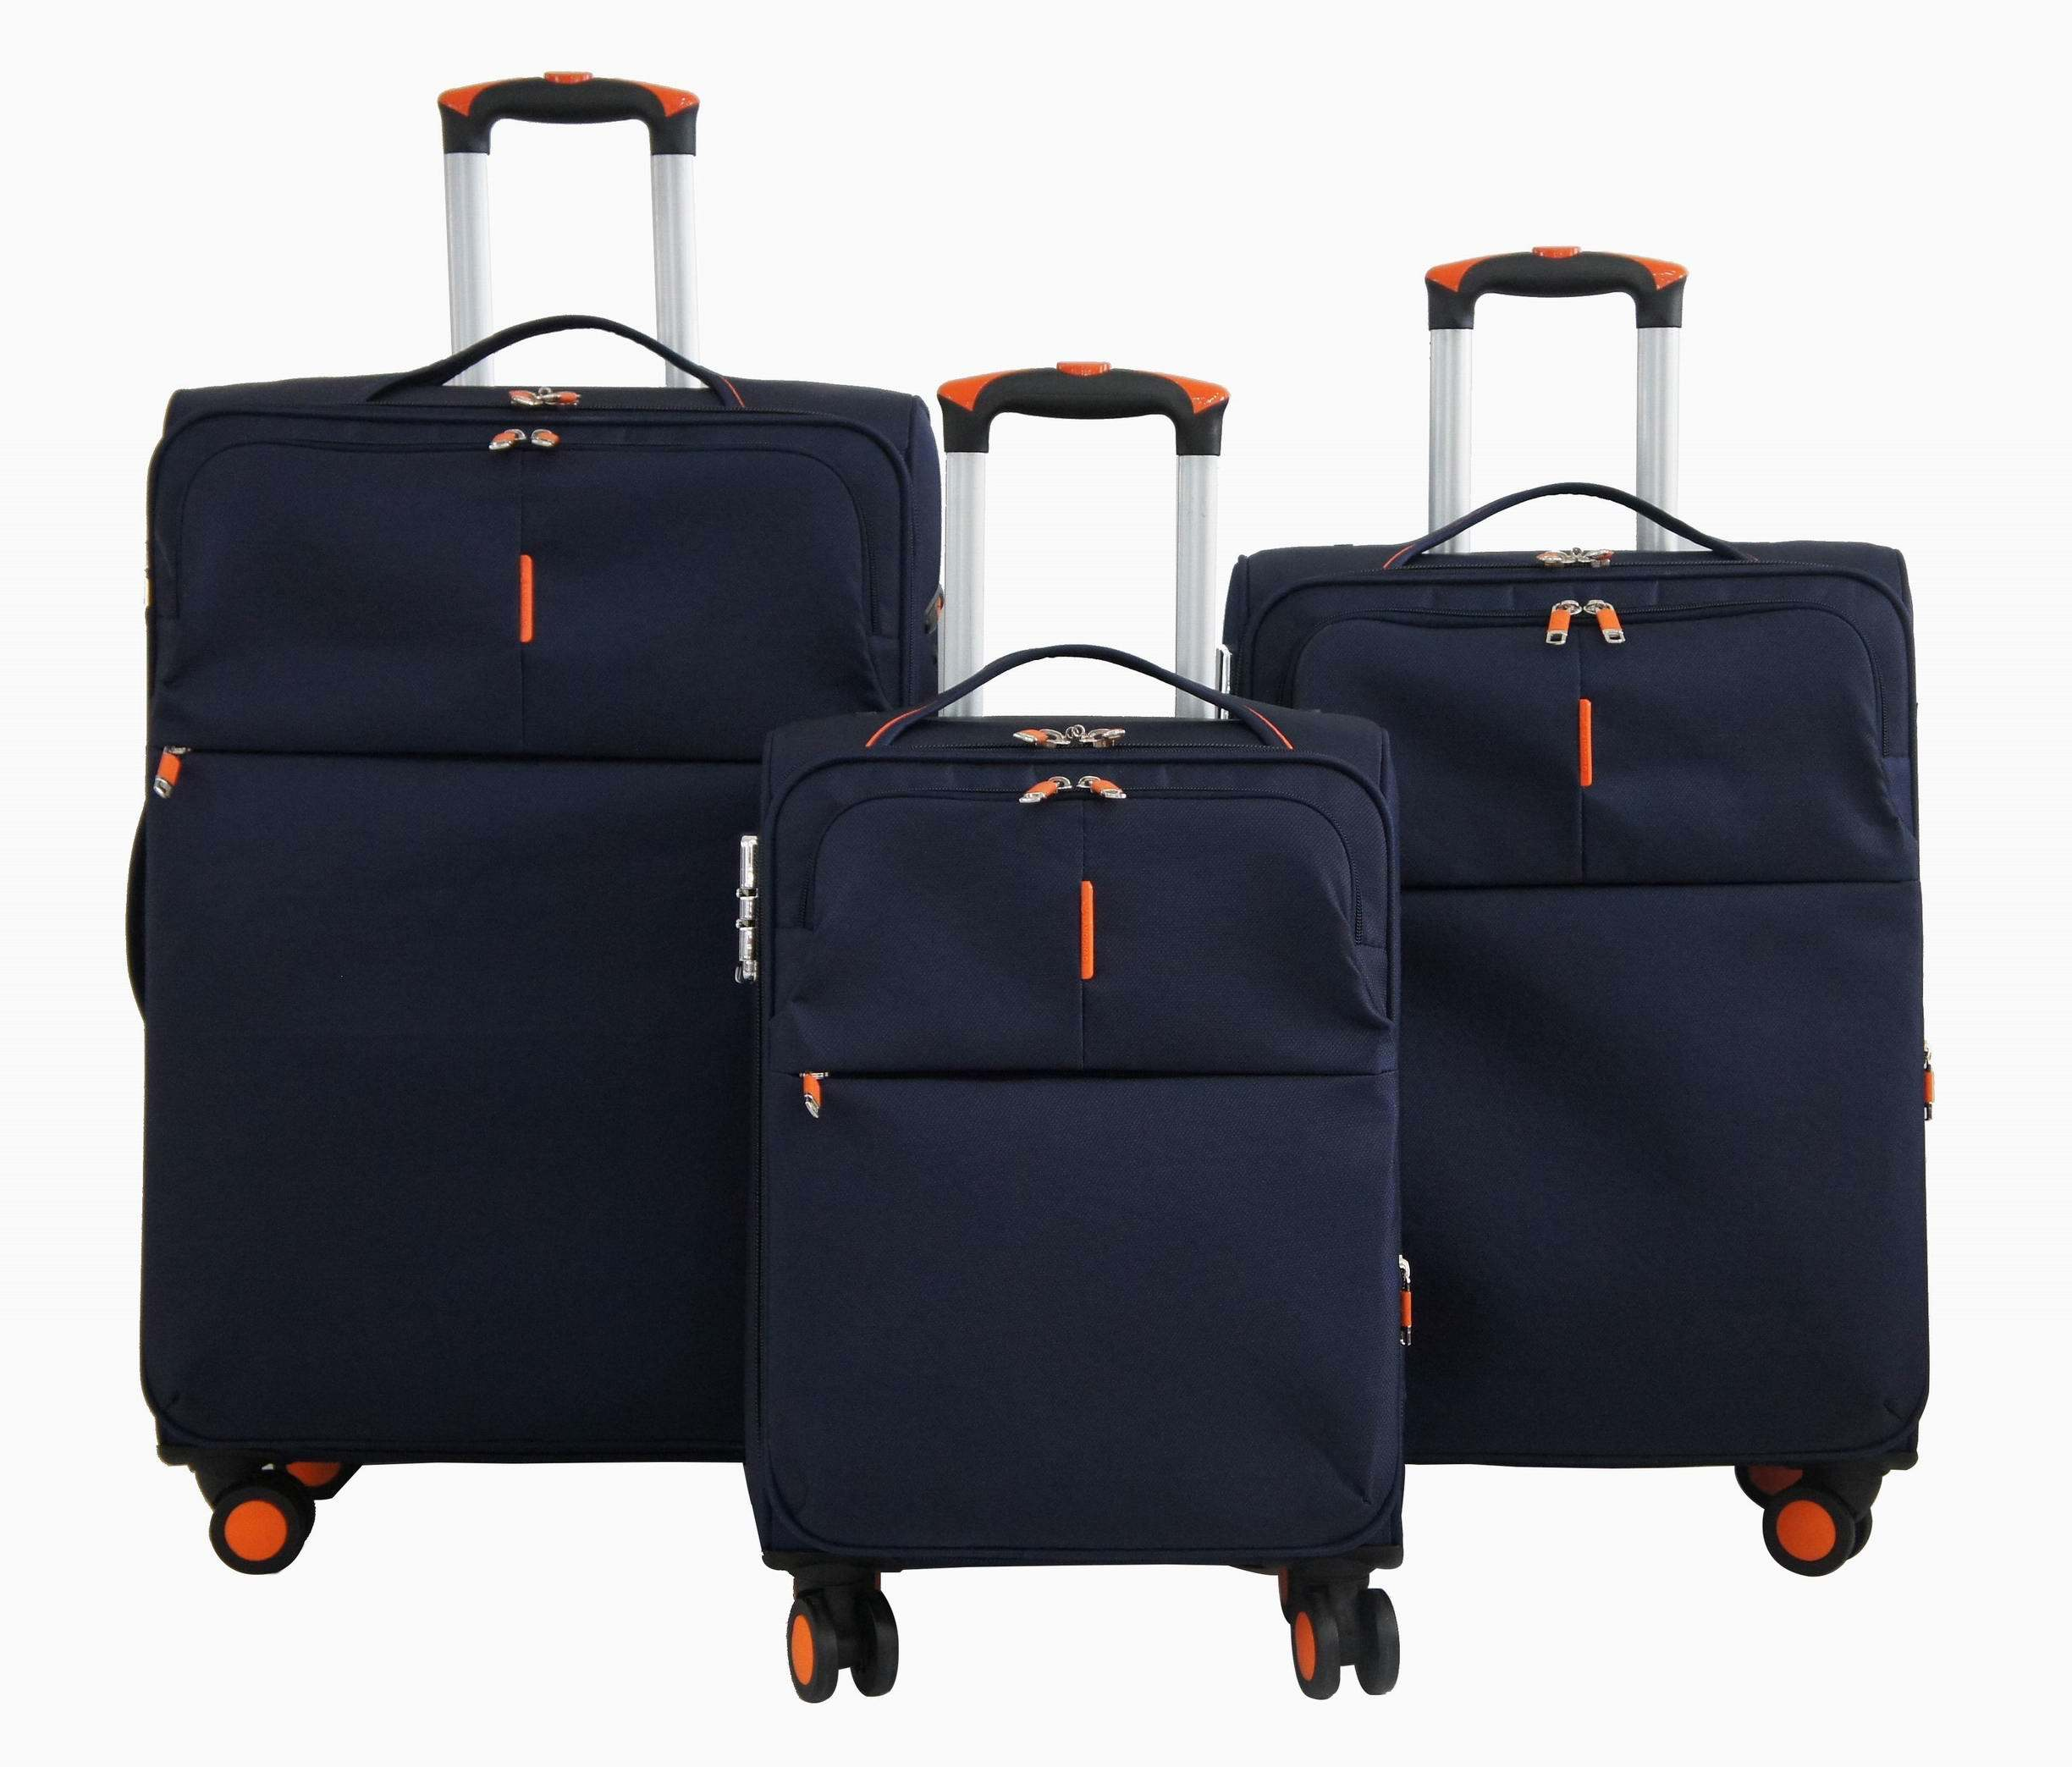 Nylon Soft Trolley Case Luggage Bag Suitcase 1jb011